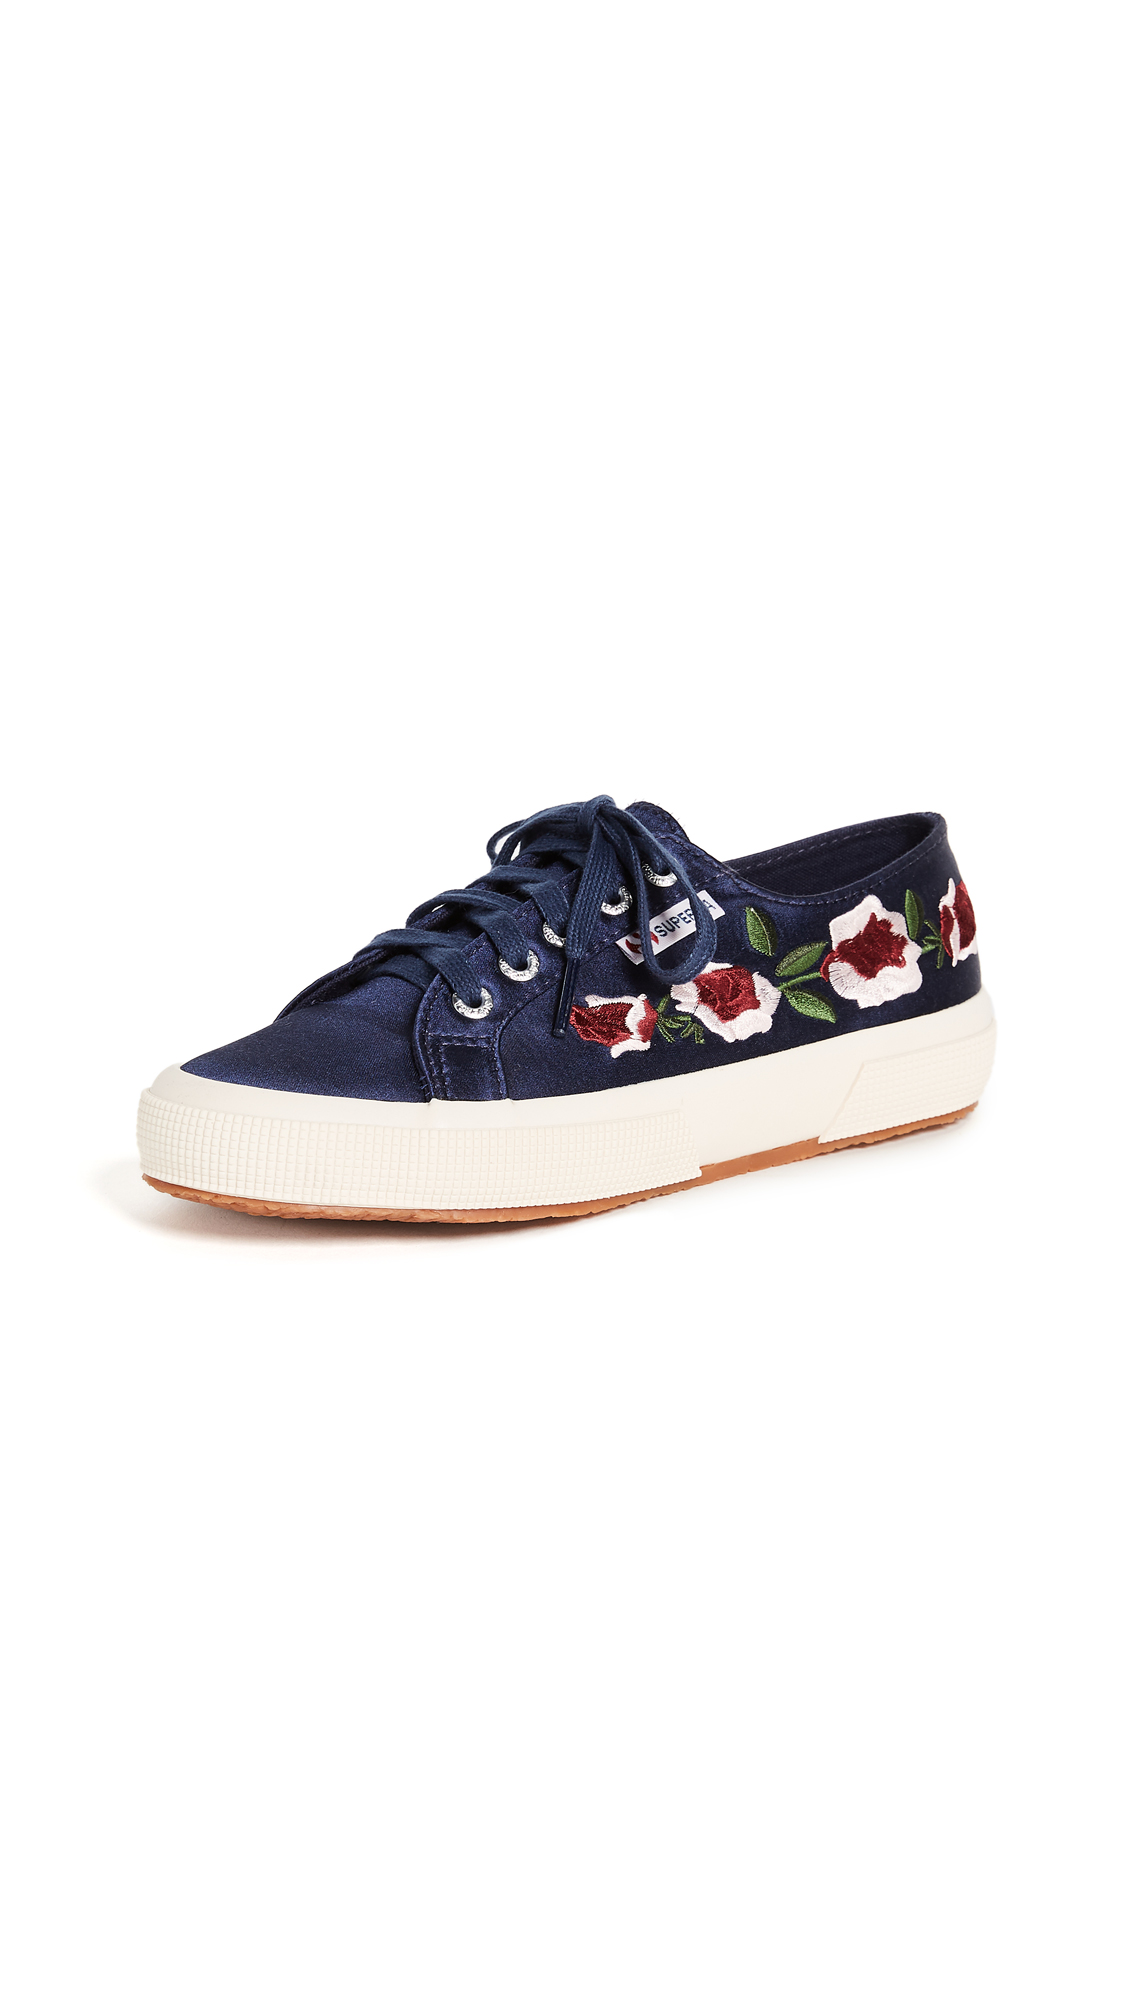 Superga 2750 Satin Floral Sneakers - Navy